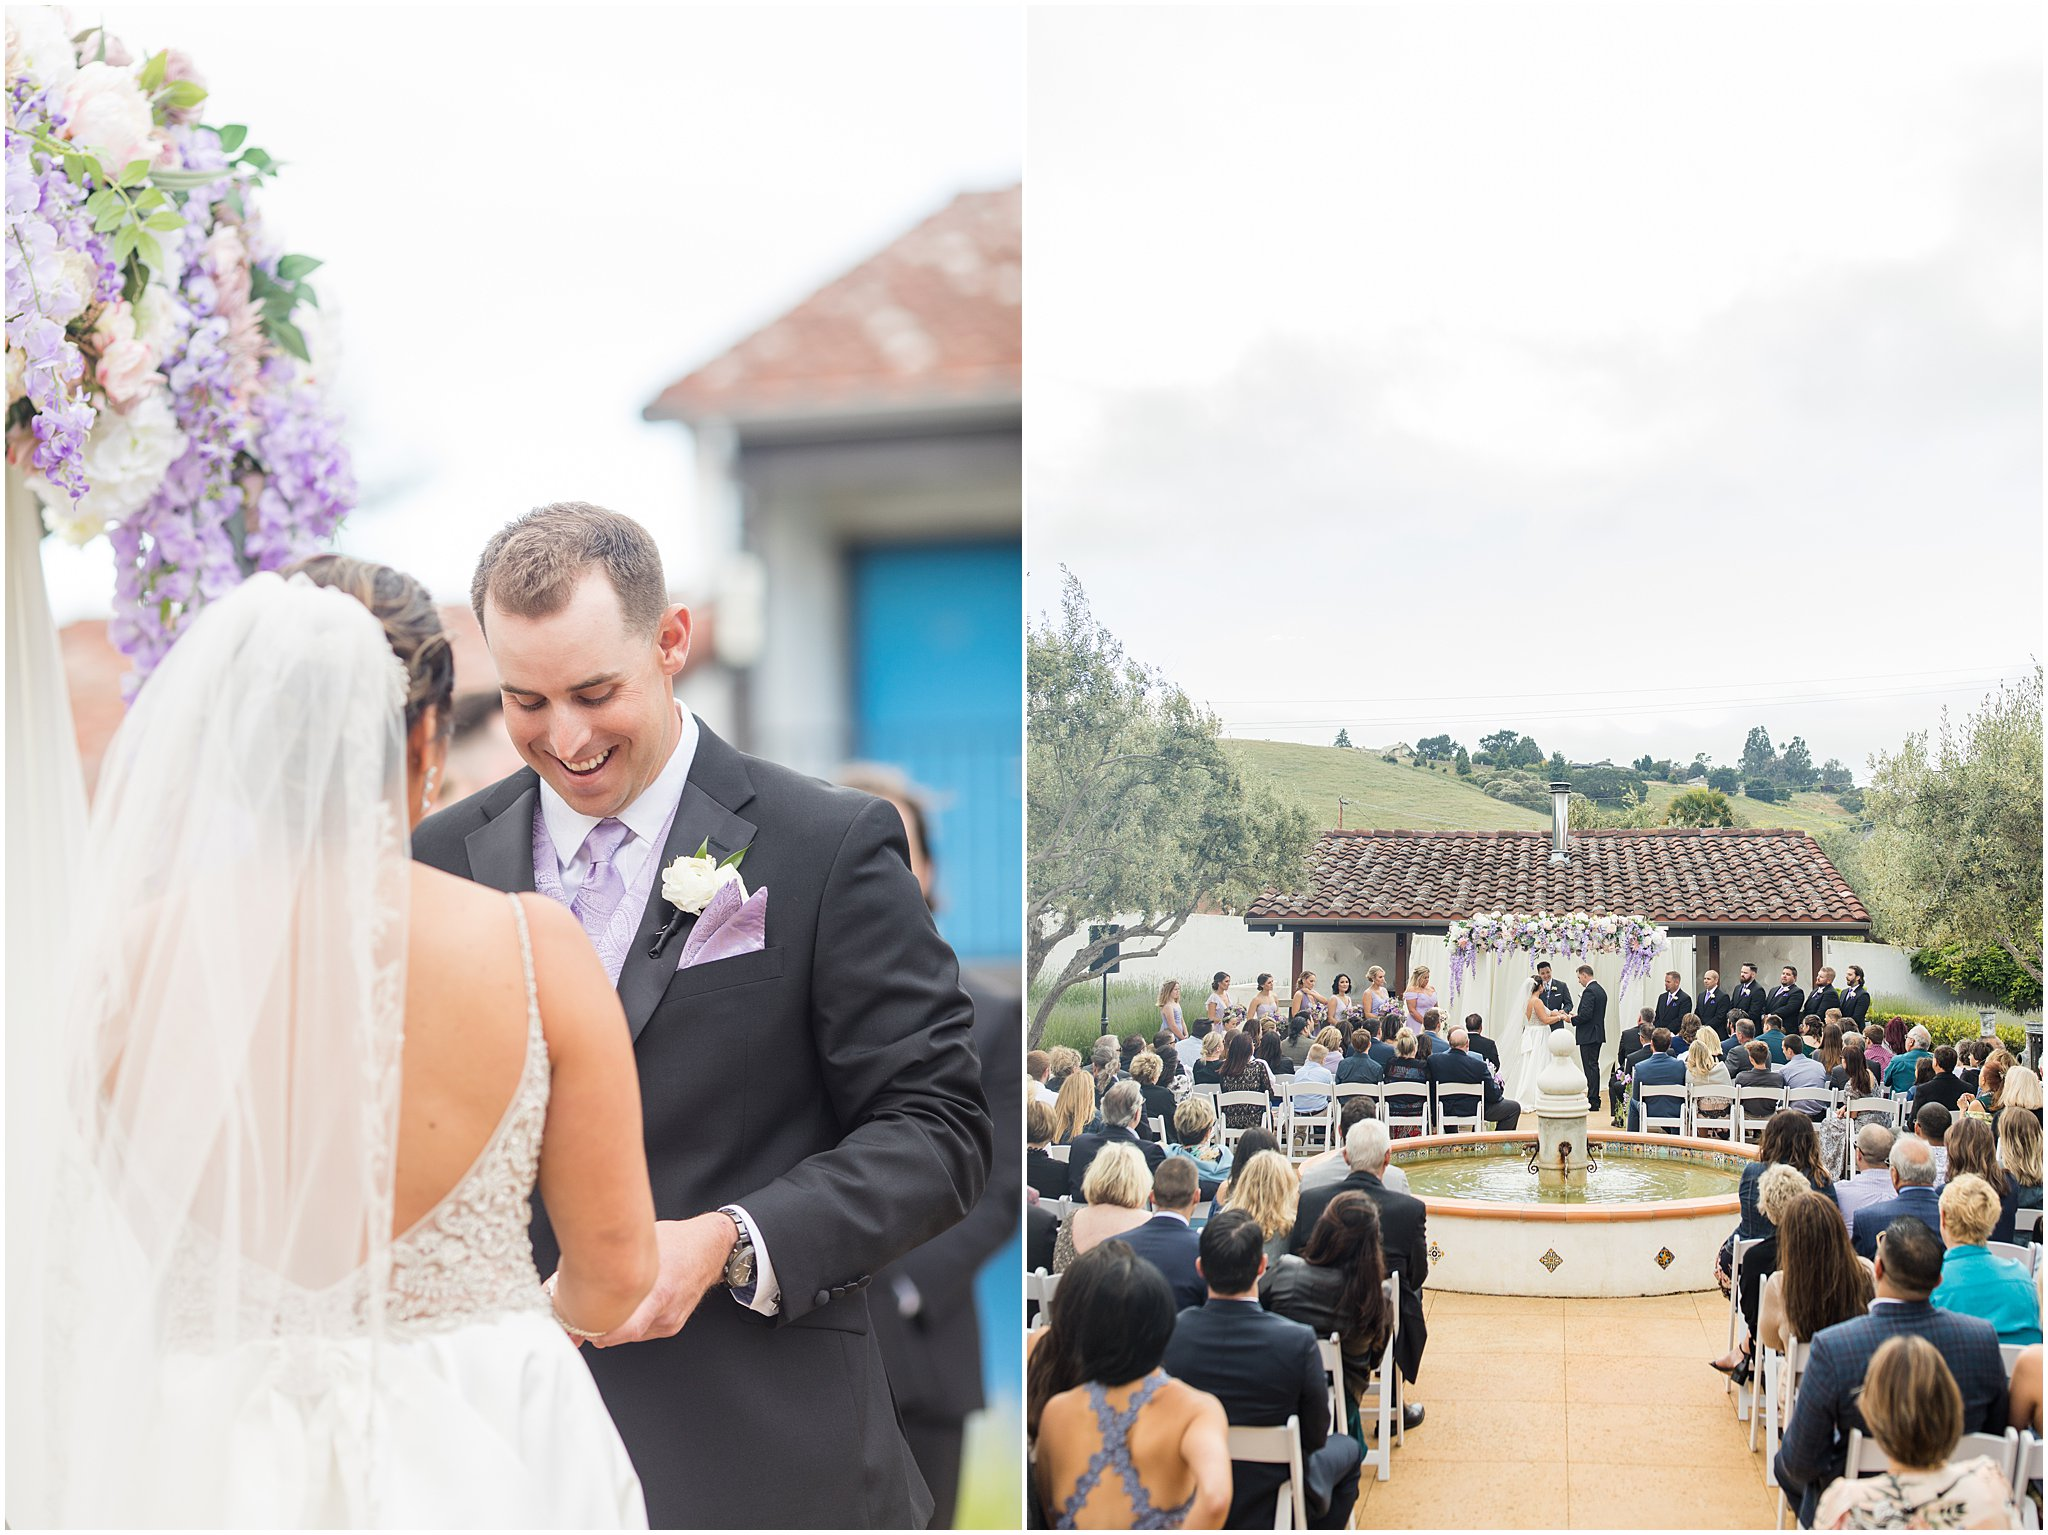 2019 wedding san juan bautista hacienda de leal vineyards bay area wedding photographer_0045.jpg